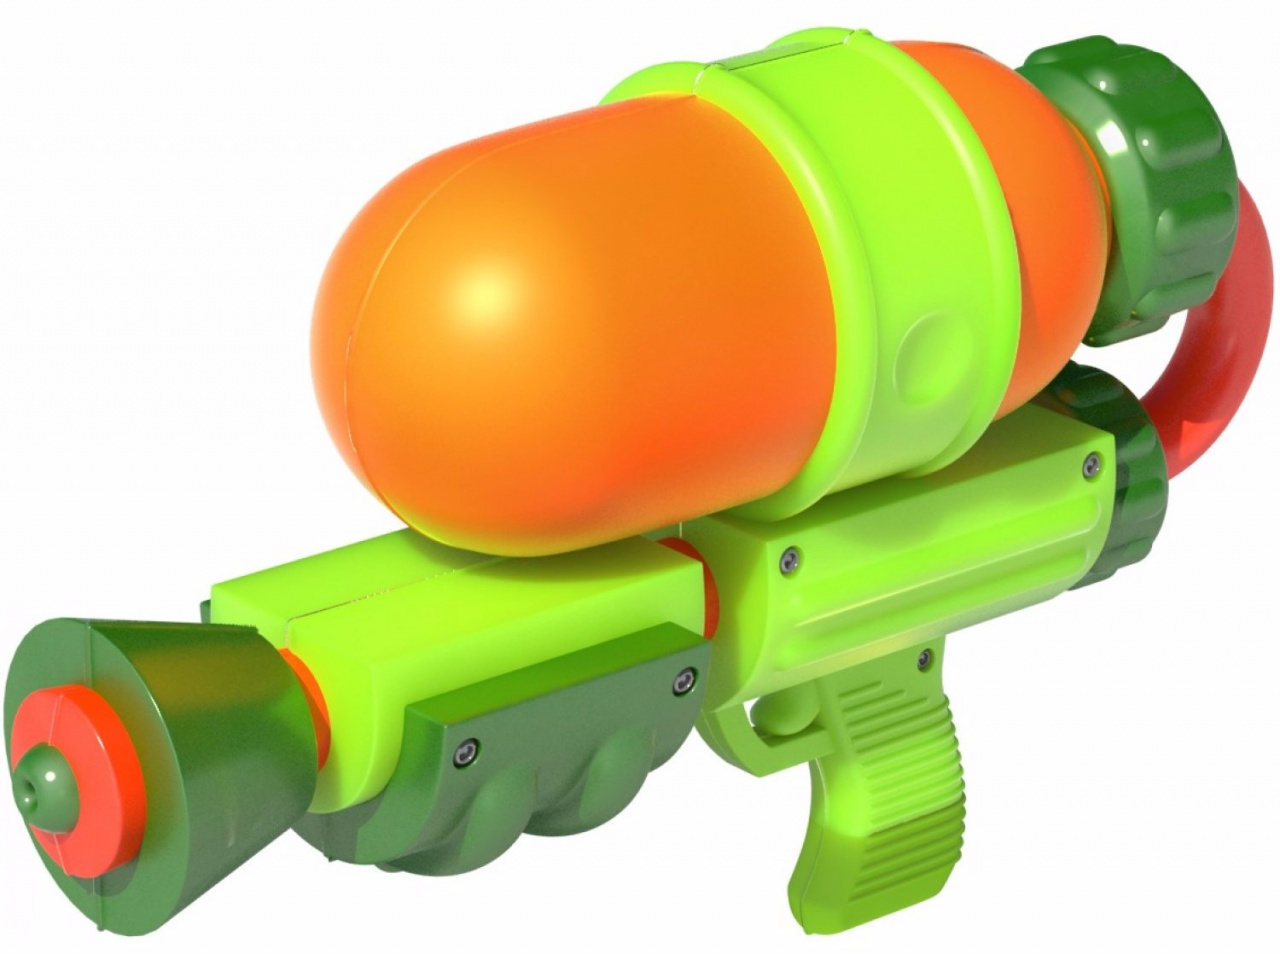 The guns in splatoon take a lot of inspiration from real world water